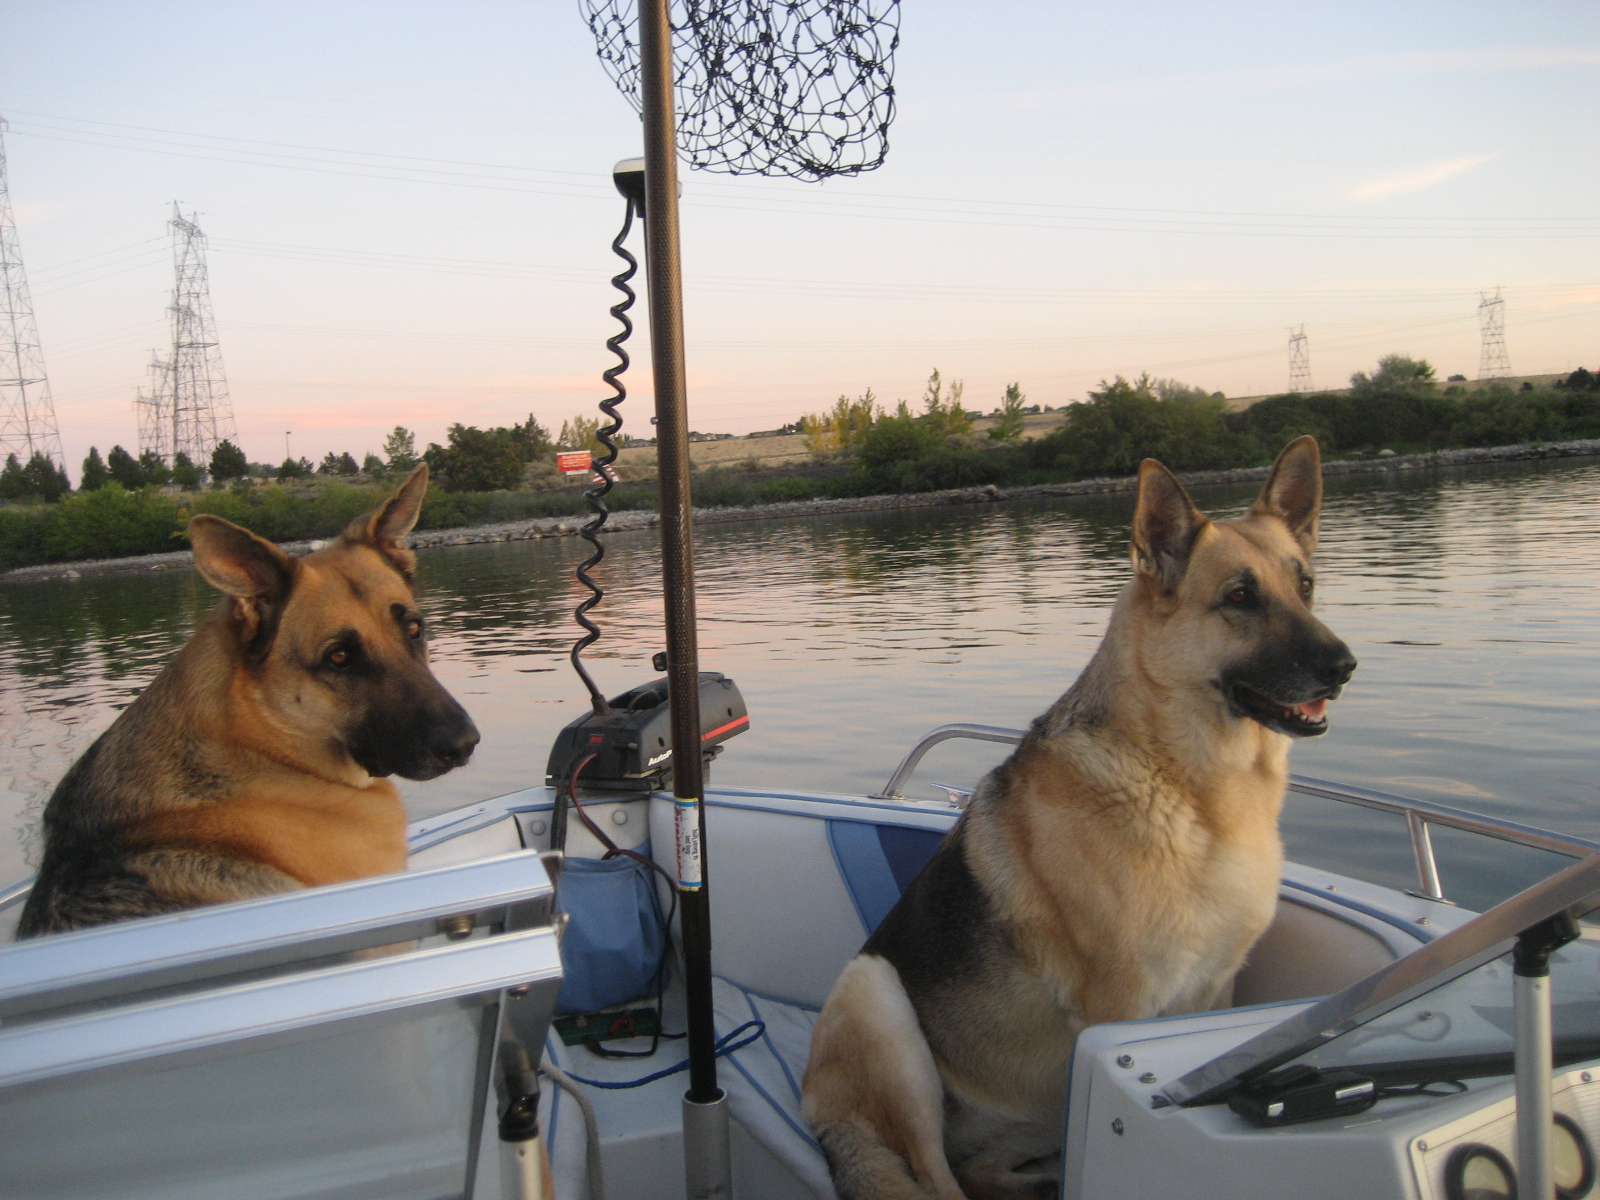 German Shepherd dogs in the pleasure boat wallpaper